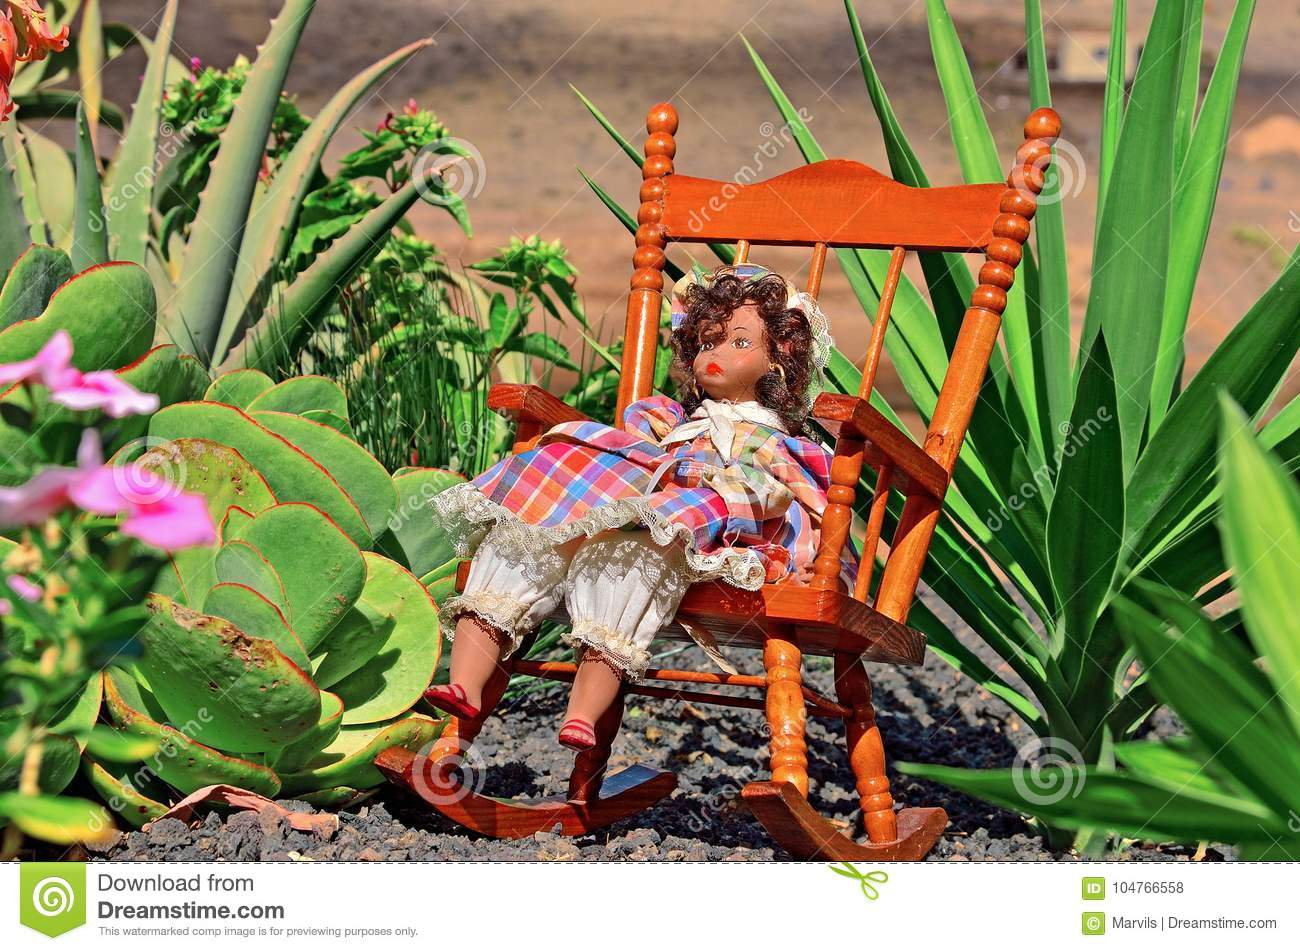 Download Doll In The Dress At The Garden Stock Photo   Image Of Dacha, Doll